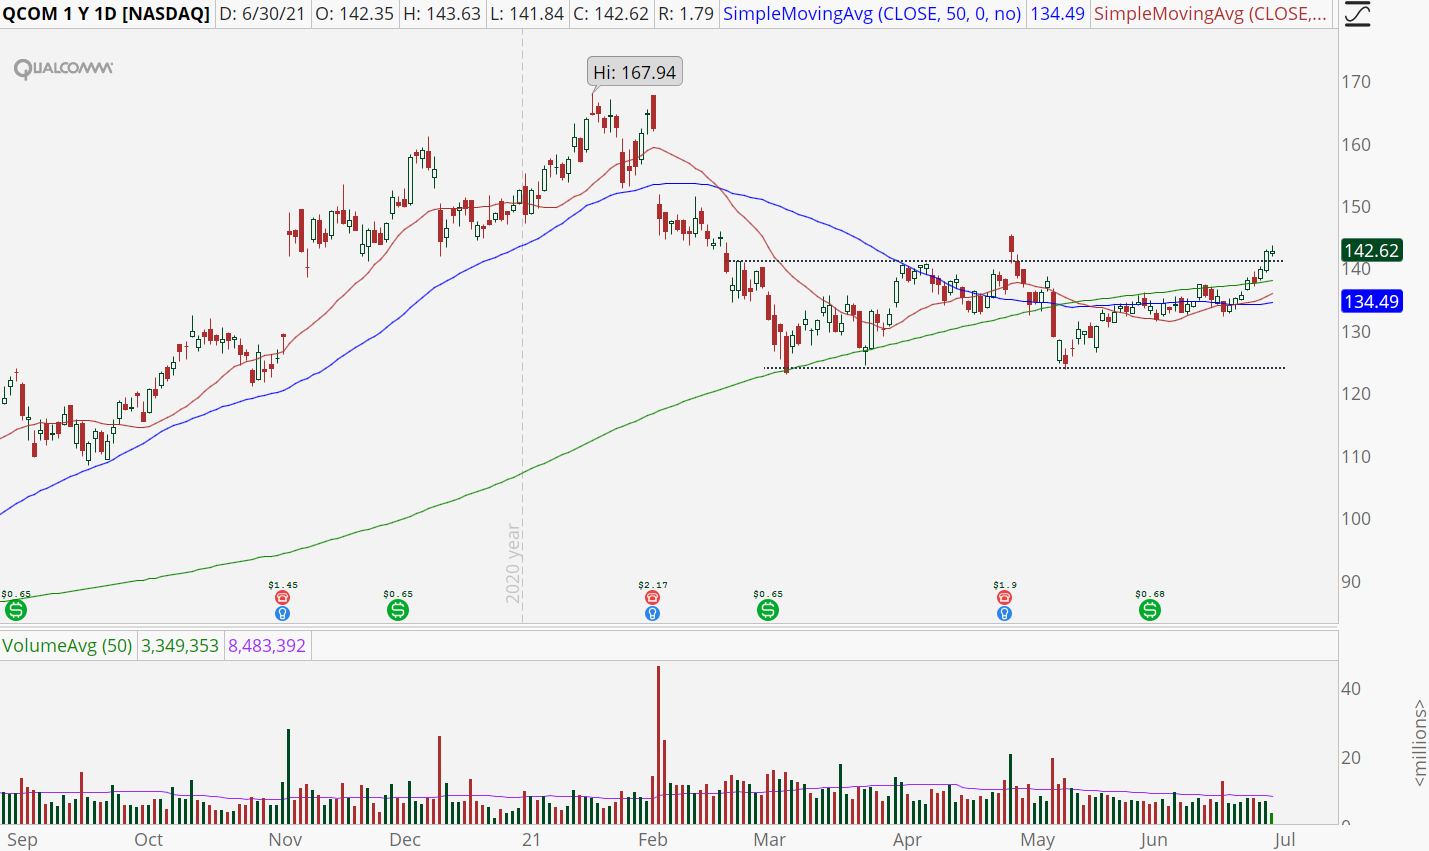 Qualcomm (QCOM) stock with double bottom pattern